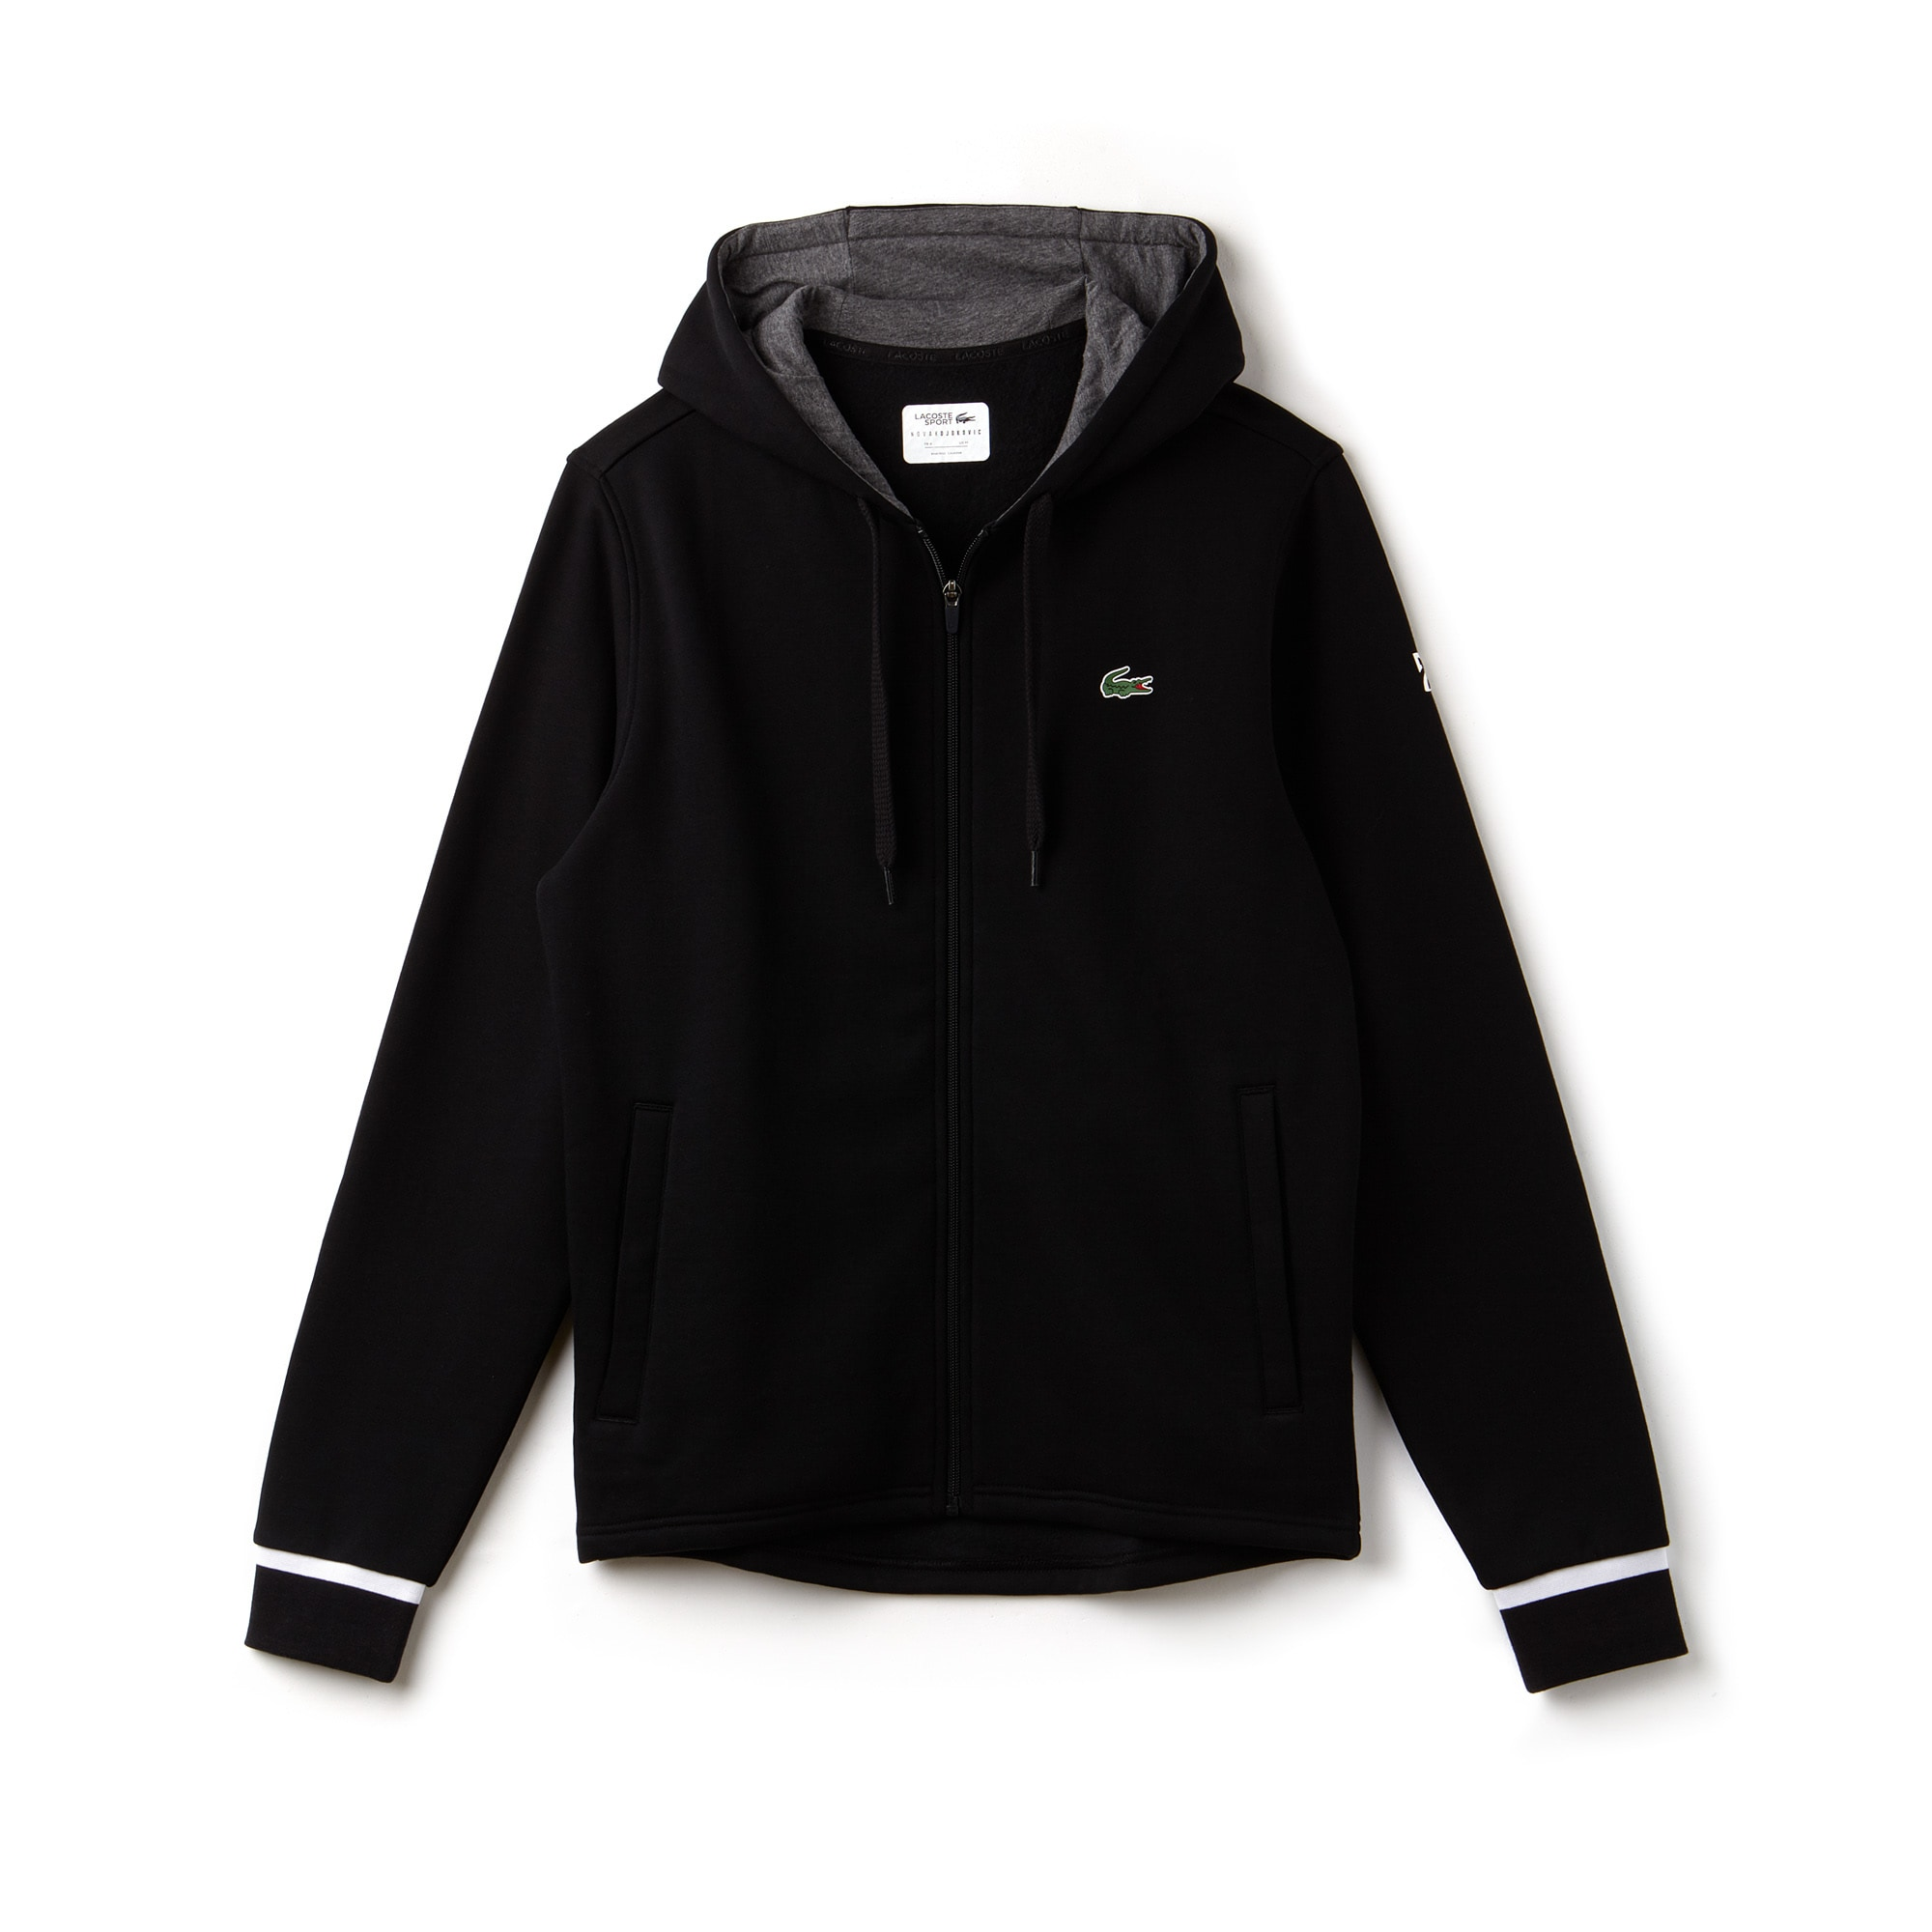 Sudadera Hombre Lacoste Sport Novak Djokovic Support With Style Collection